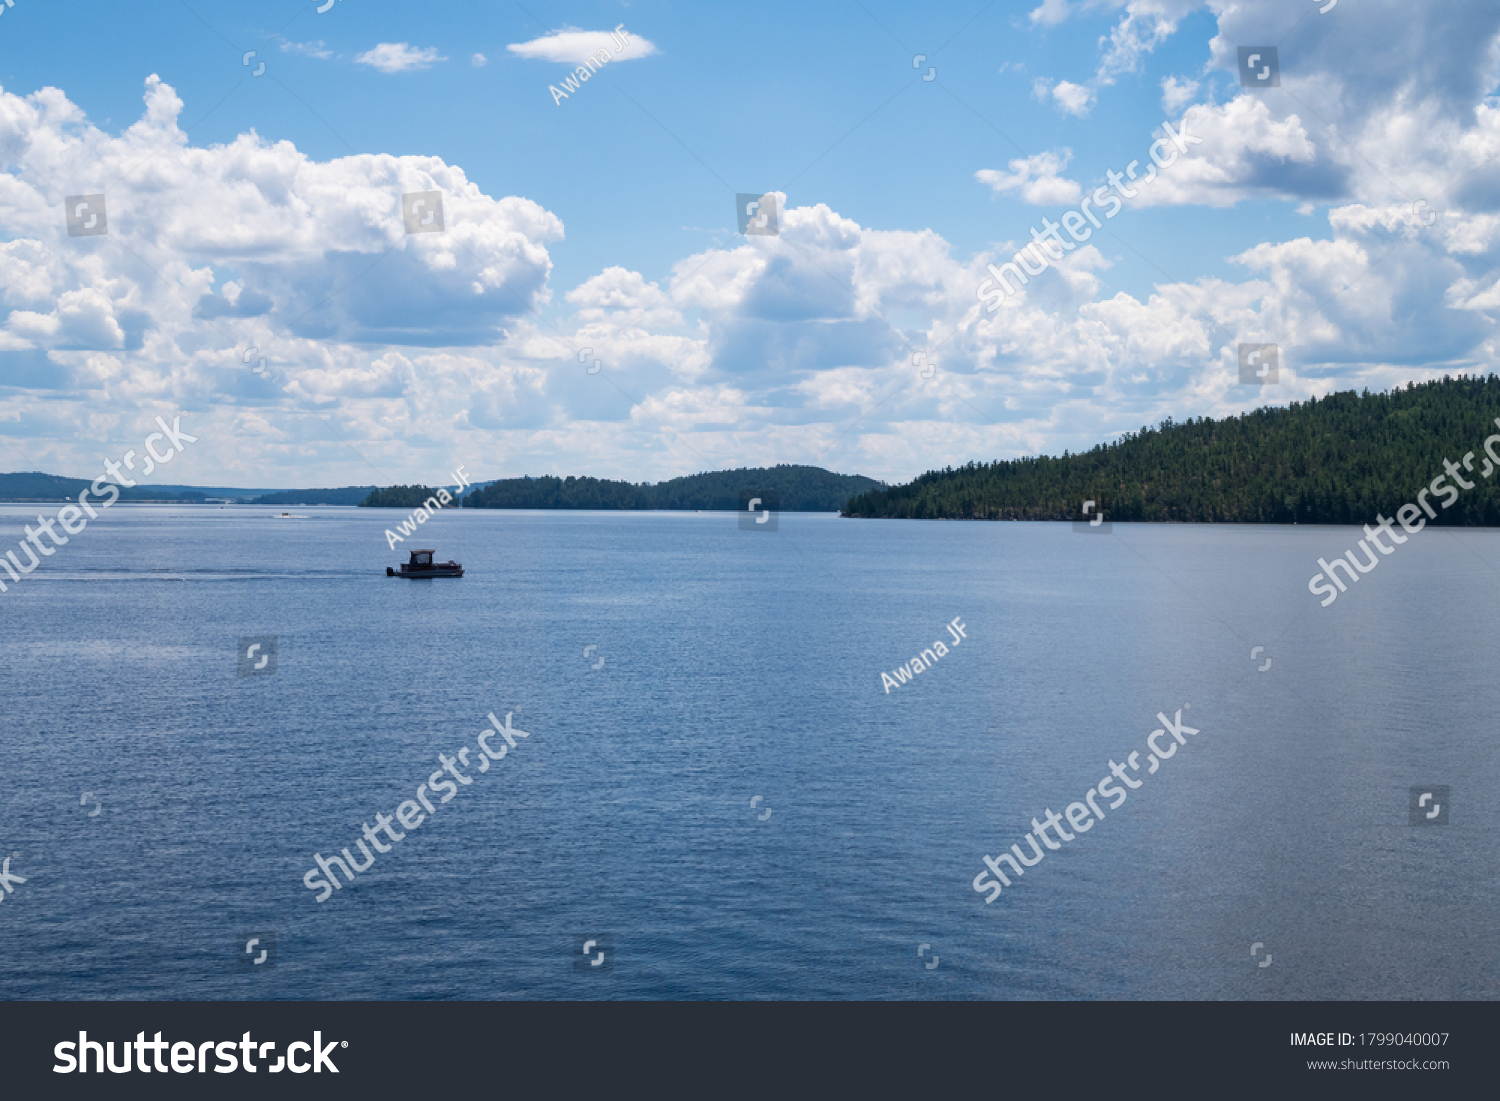 stock-photo-beautiful-view-of-a-boat-on-